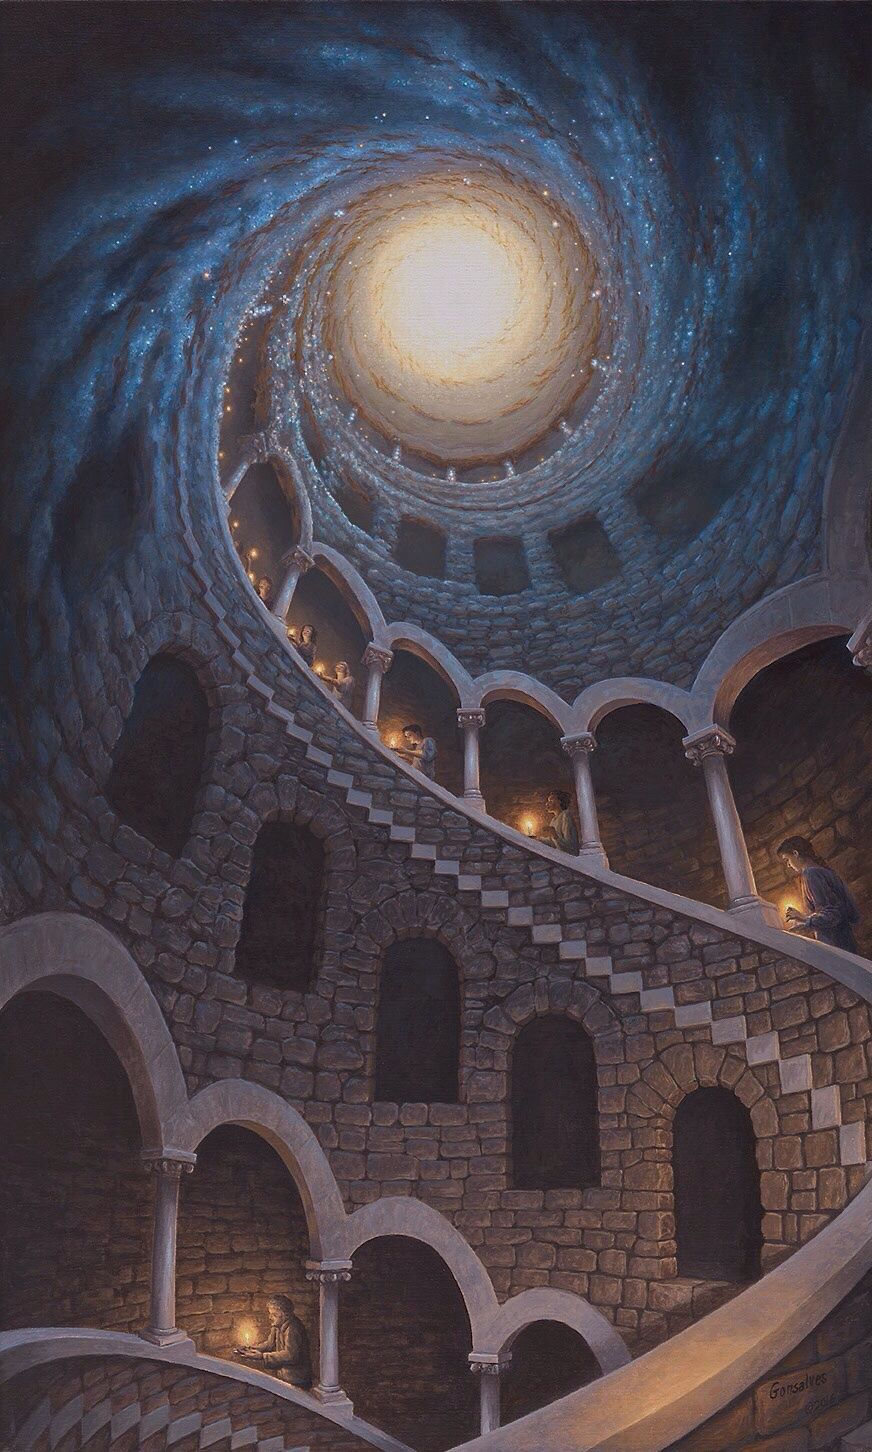 Narrative Optical Illusions Painted by Rob Gonsalves